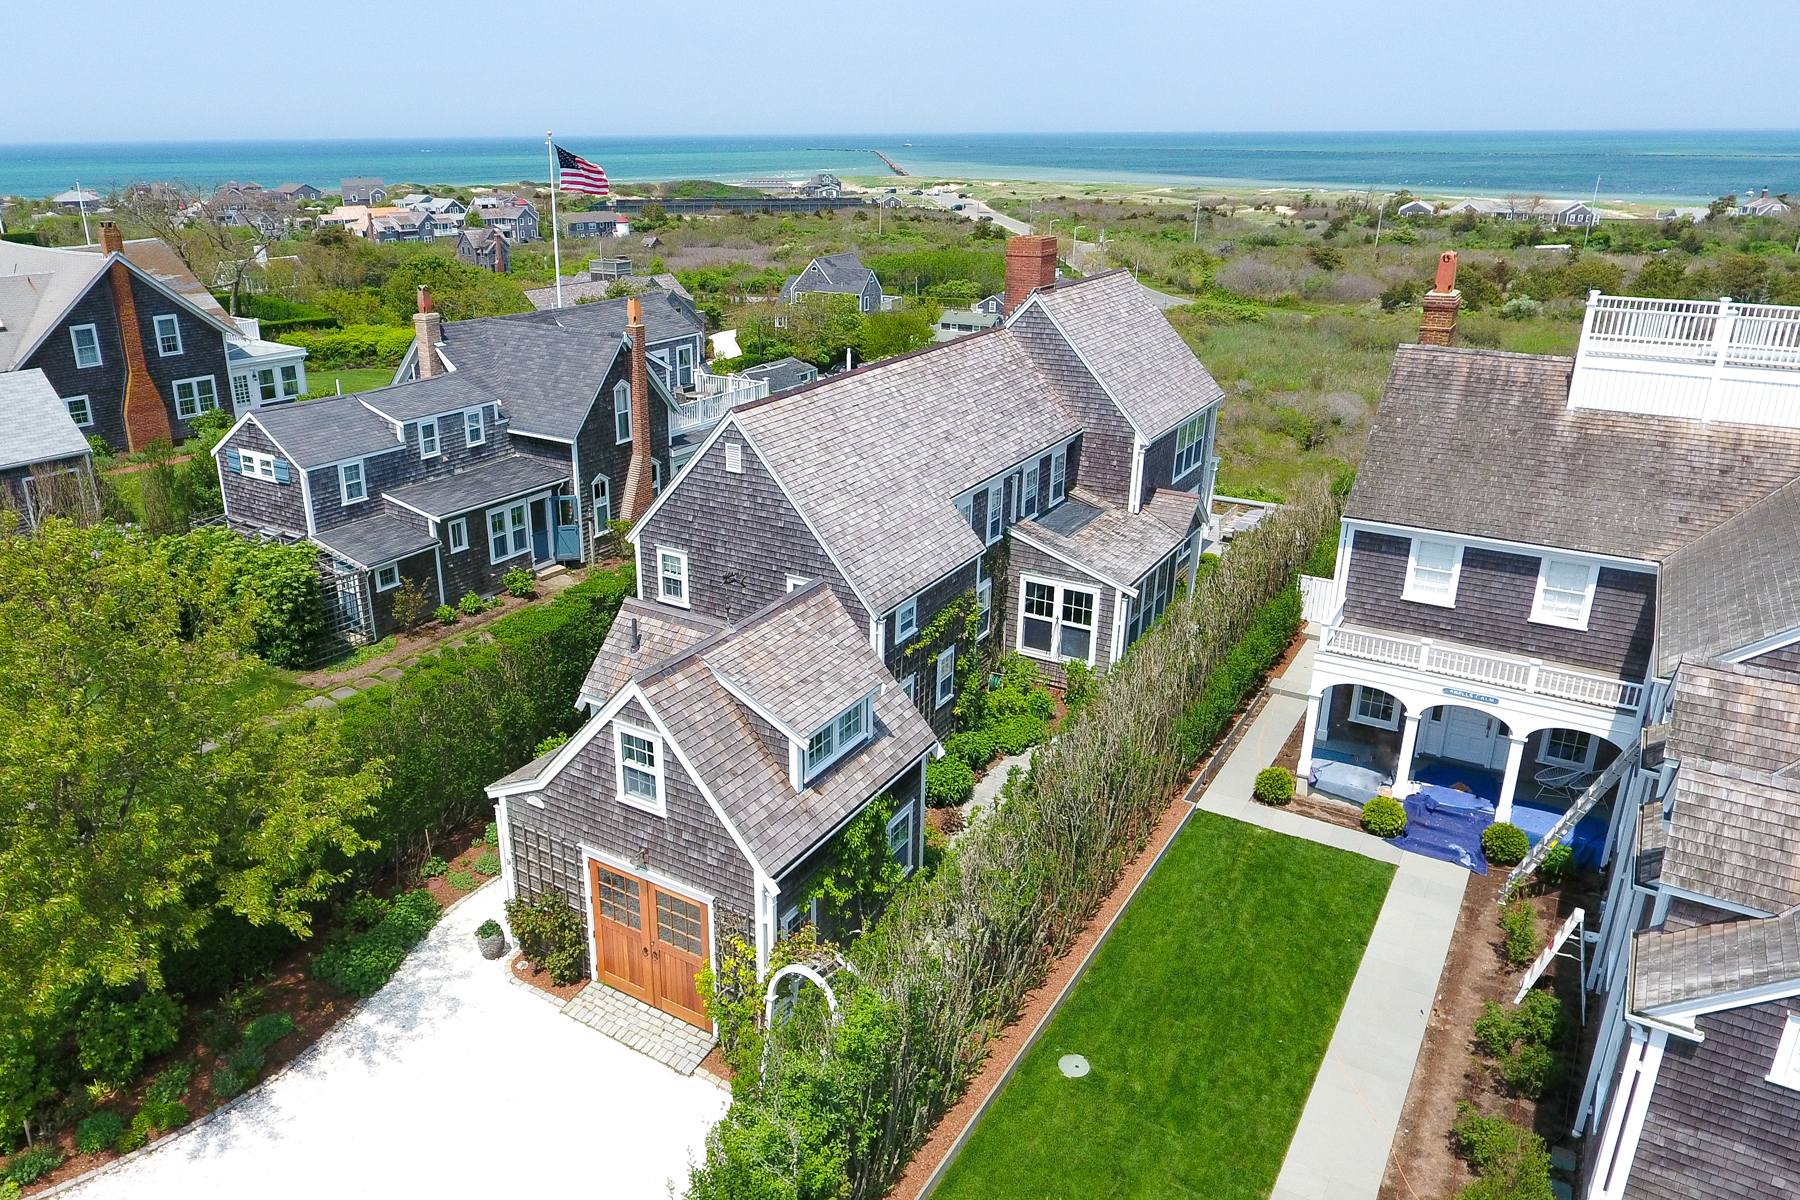 Single Family Home for Active at Picture Perfect Nantucket Location 9 Cabot Lane Nantucket, Massachusetts 02554 United States